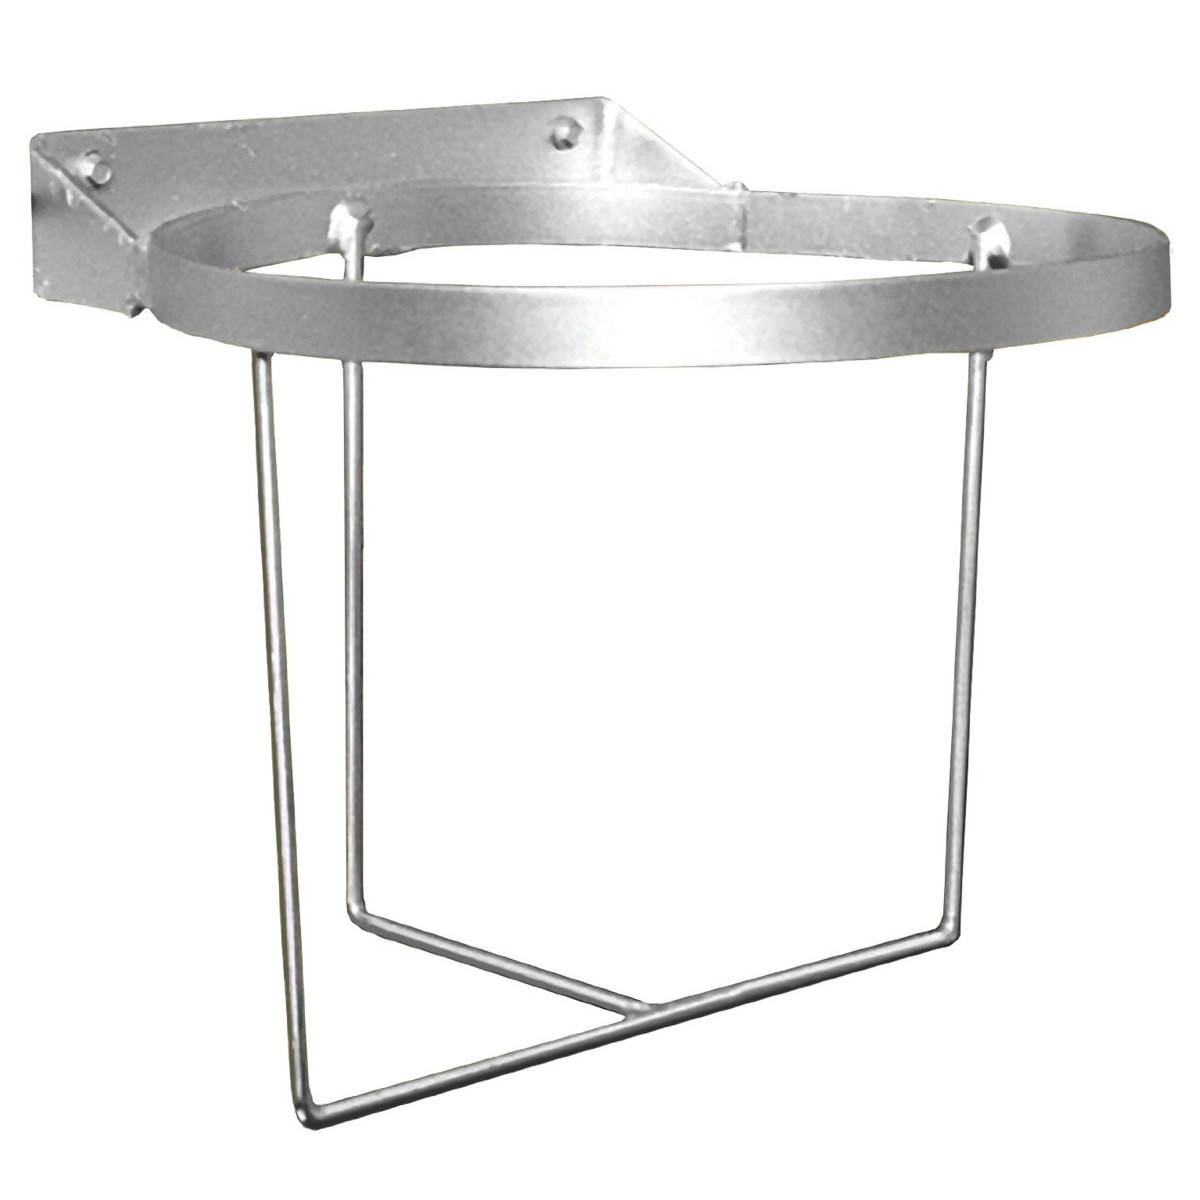 Behlen 5 Gallon Bucket Holder 76110038